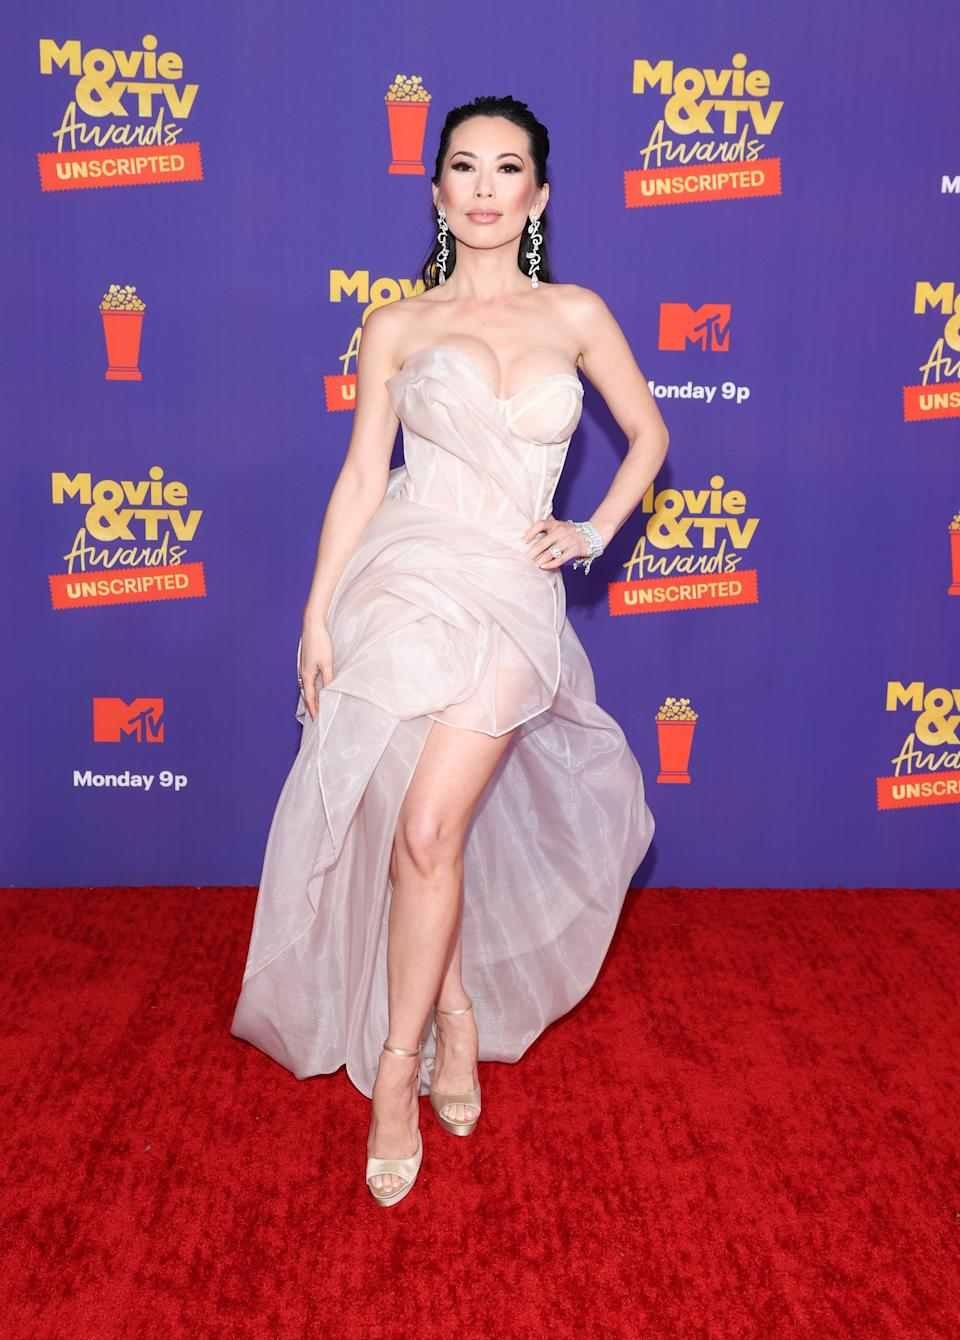 LOS ANGELES, CALIFORNIA - MAY 17: In this image released on May 17, Christine Chiu attends the 2021 MTV Movie & TV Awards: UNSCRIPTED in Los Angeles, California. (Photo by Amy Sussman/Getty Images)